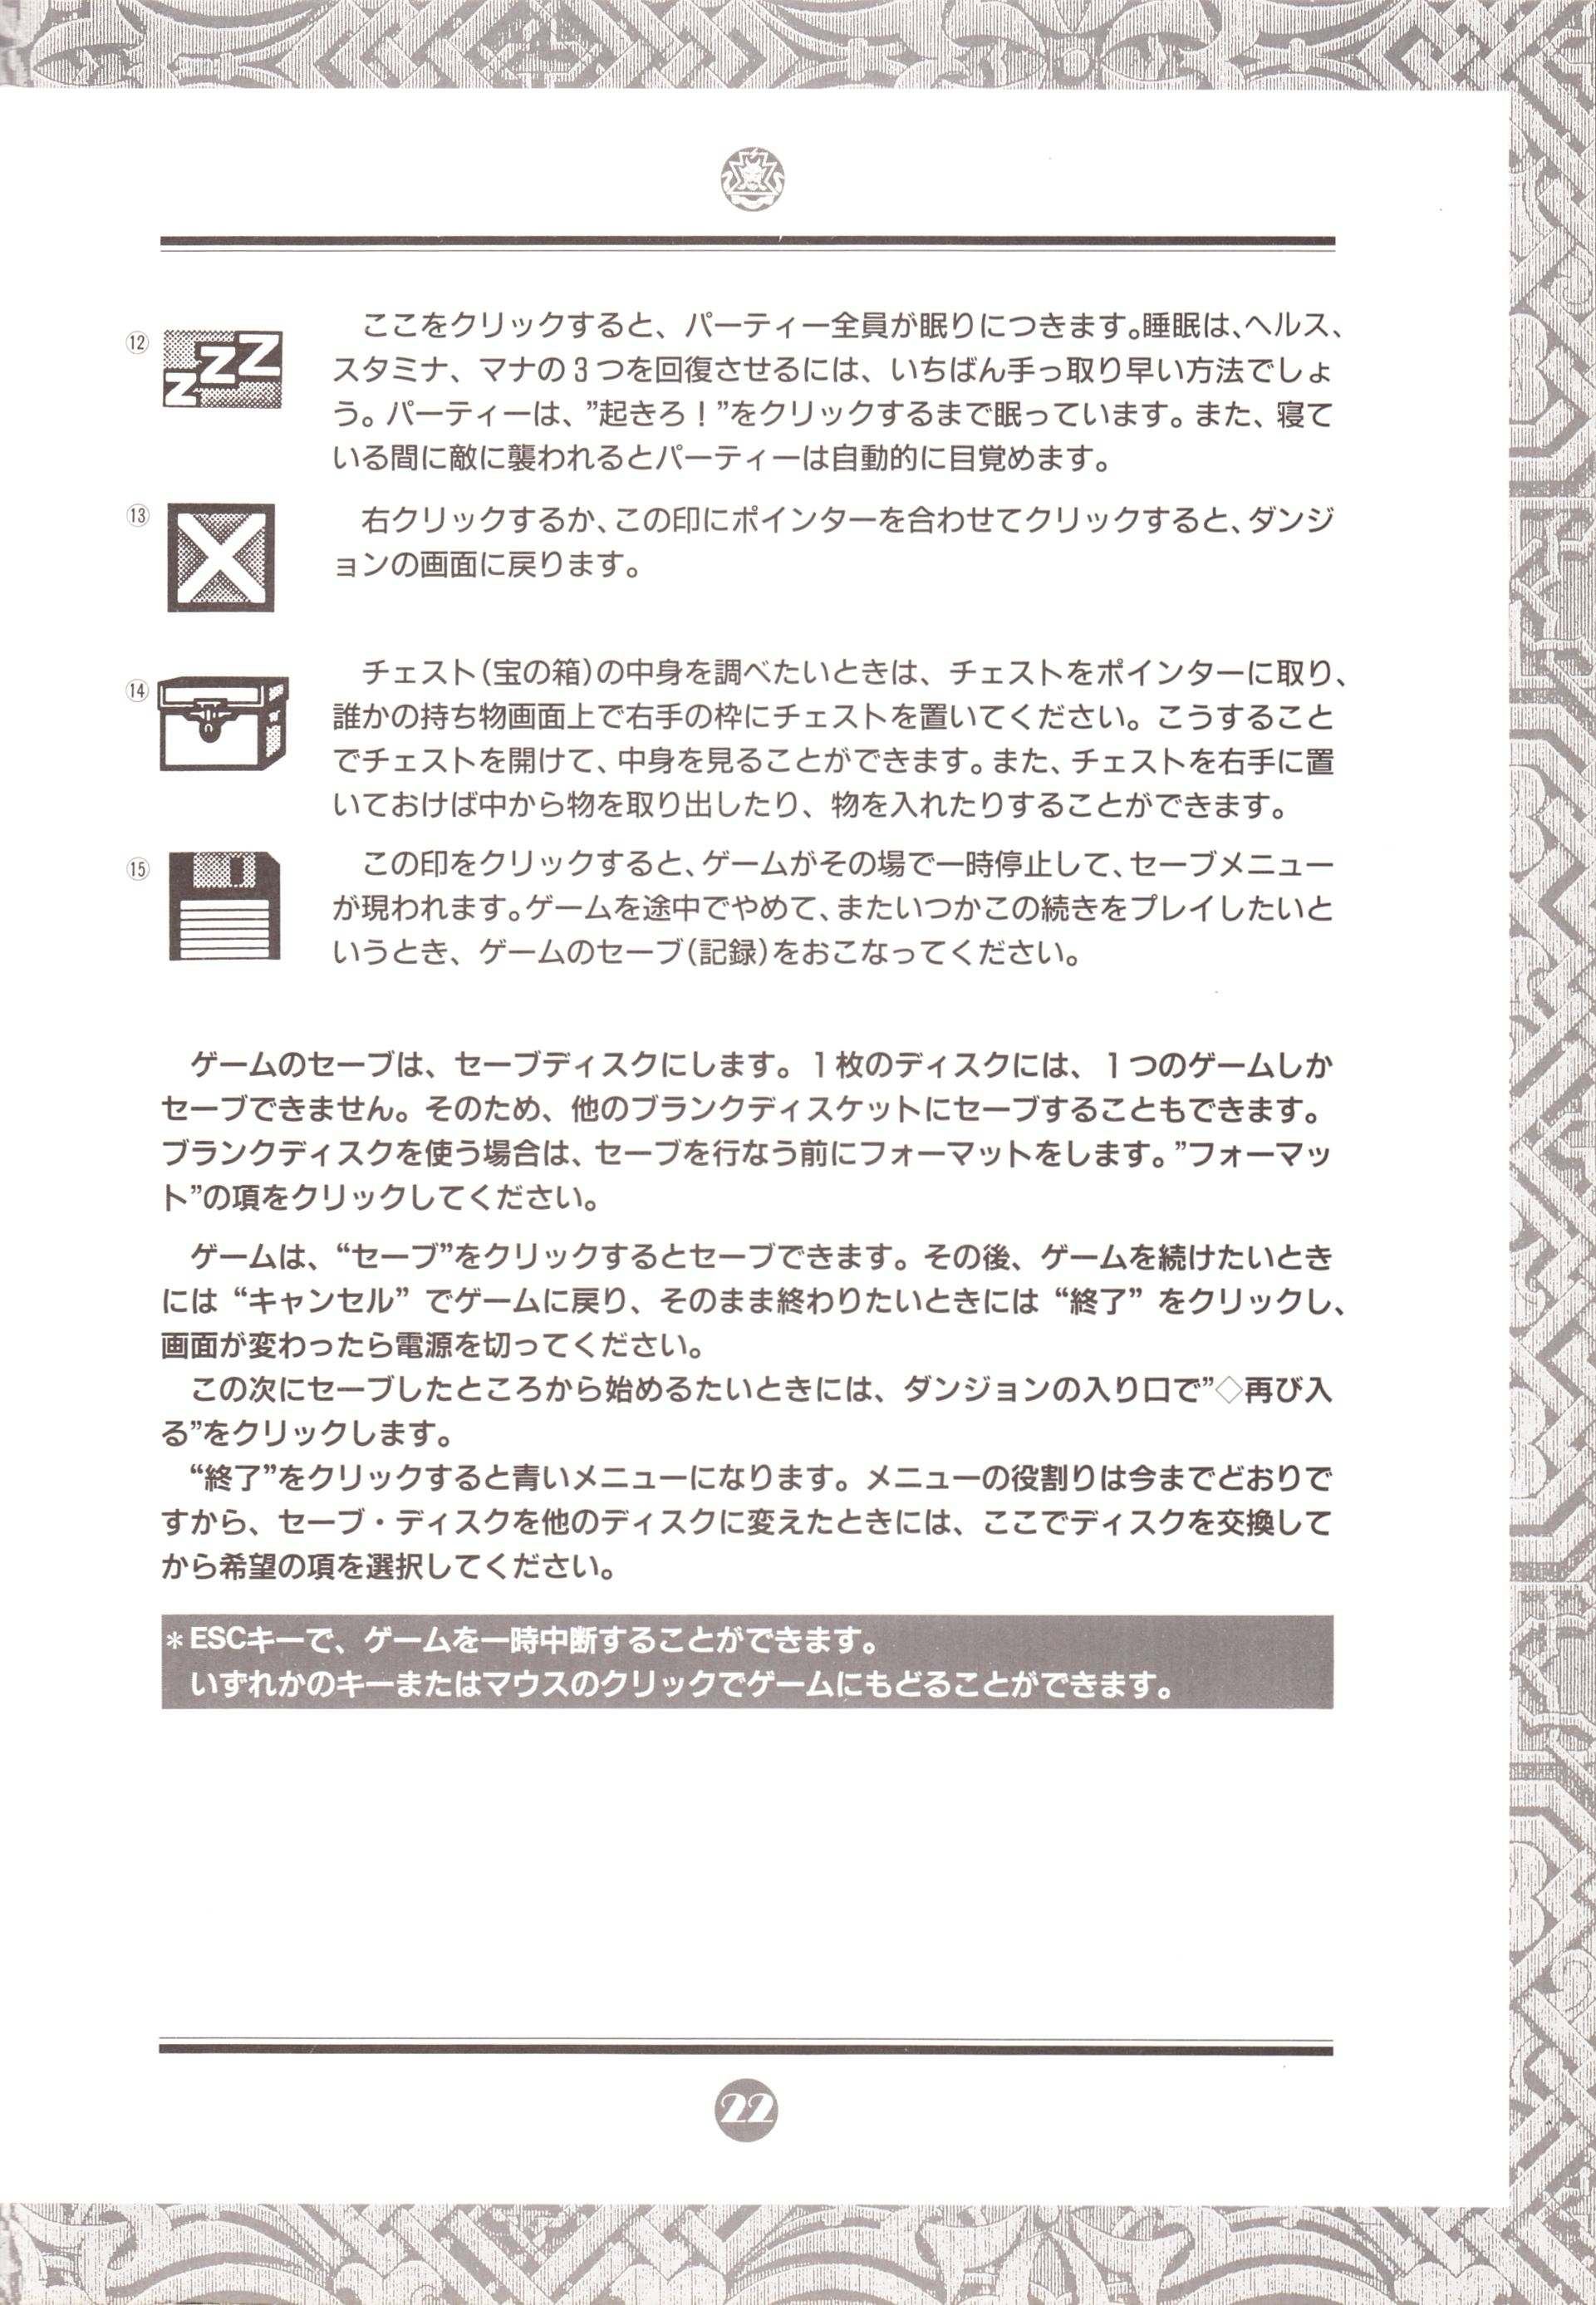 Game - Chaos Strikes Back - JP - PC-9801 - 3-5-inch - An Operation Manual - Page 025 - Scan